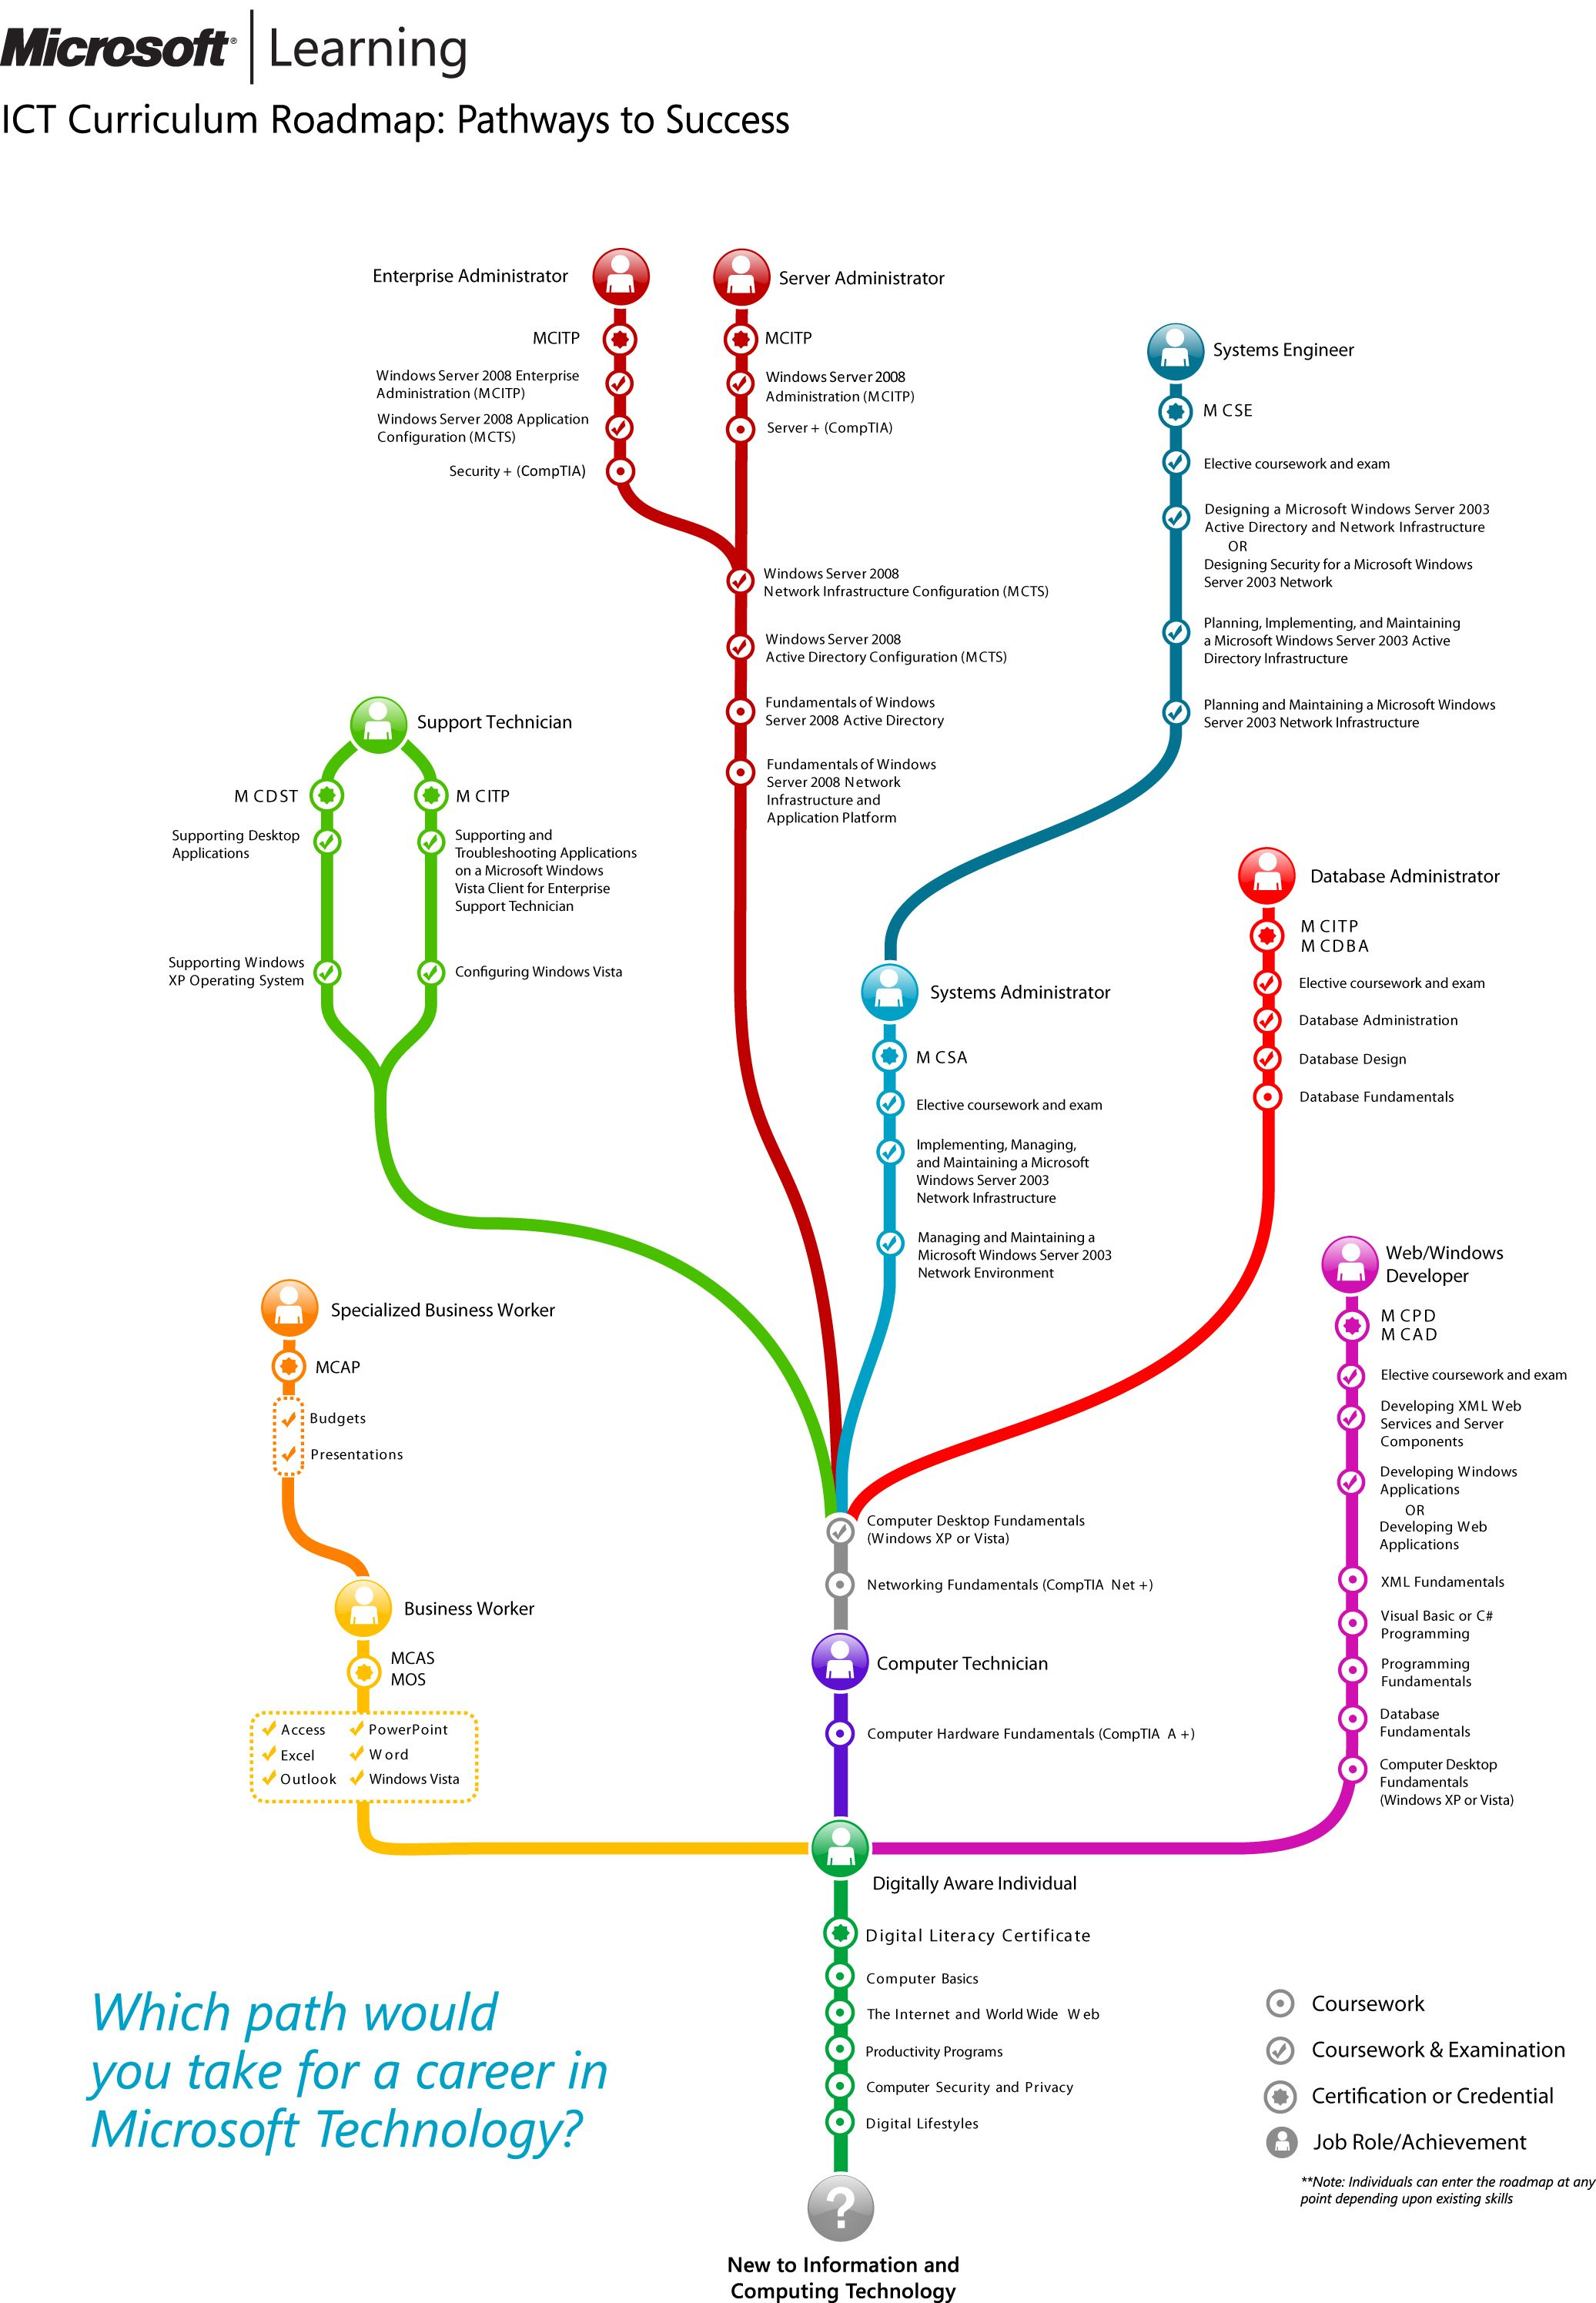 Which Path Would You Take For A Career In Microsoft